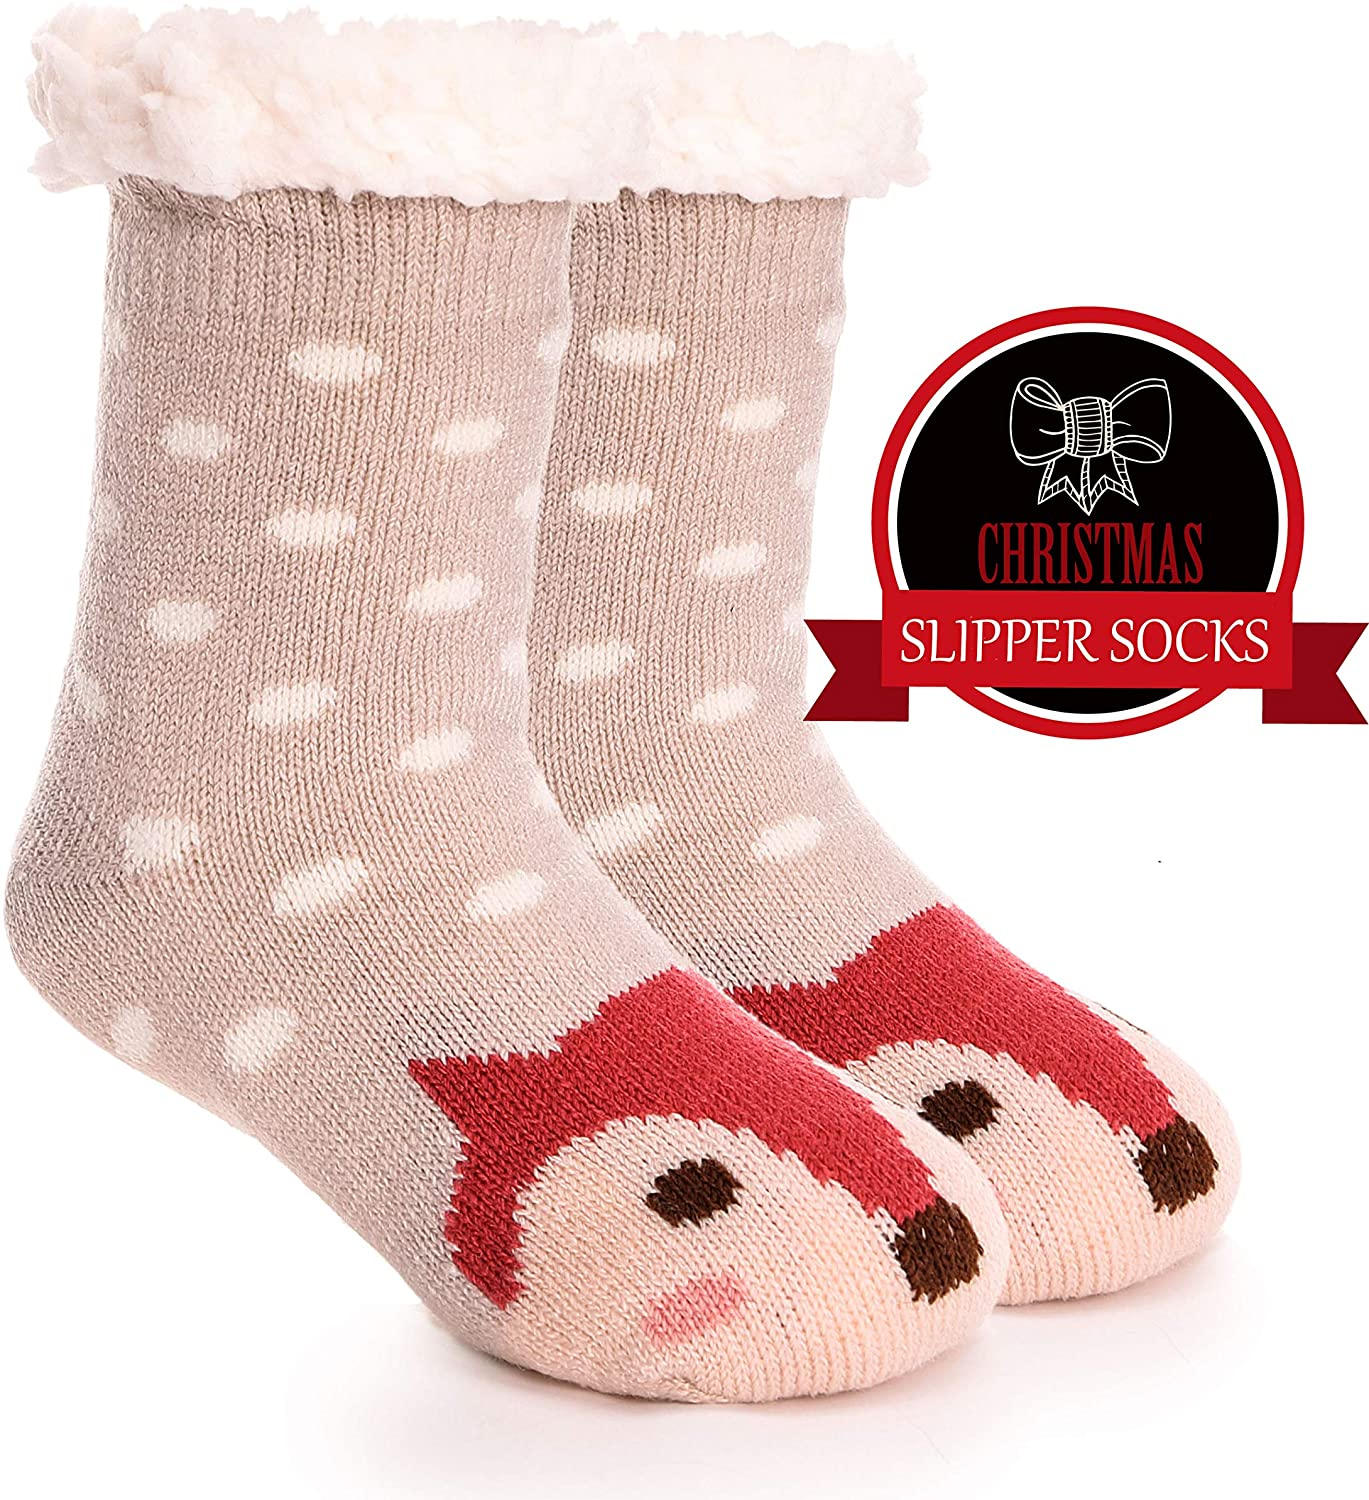 Girls Boys Slipper Socks Fuzzy Thick Warm Soft Heavy Fleece lined Winter Socks Christmas Stockings For Child Kid Toddler